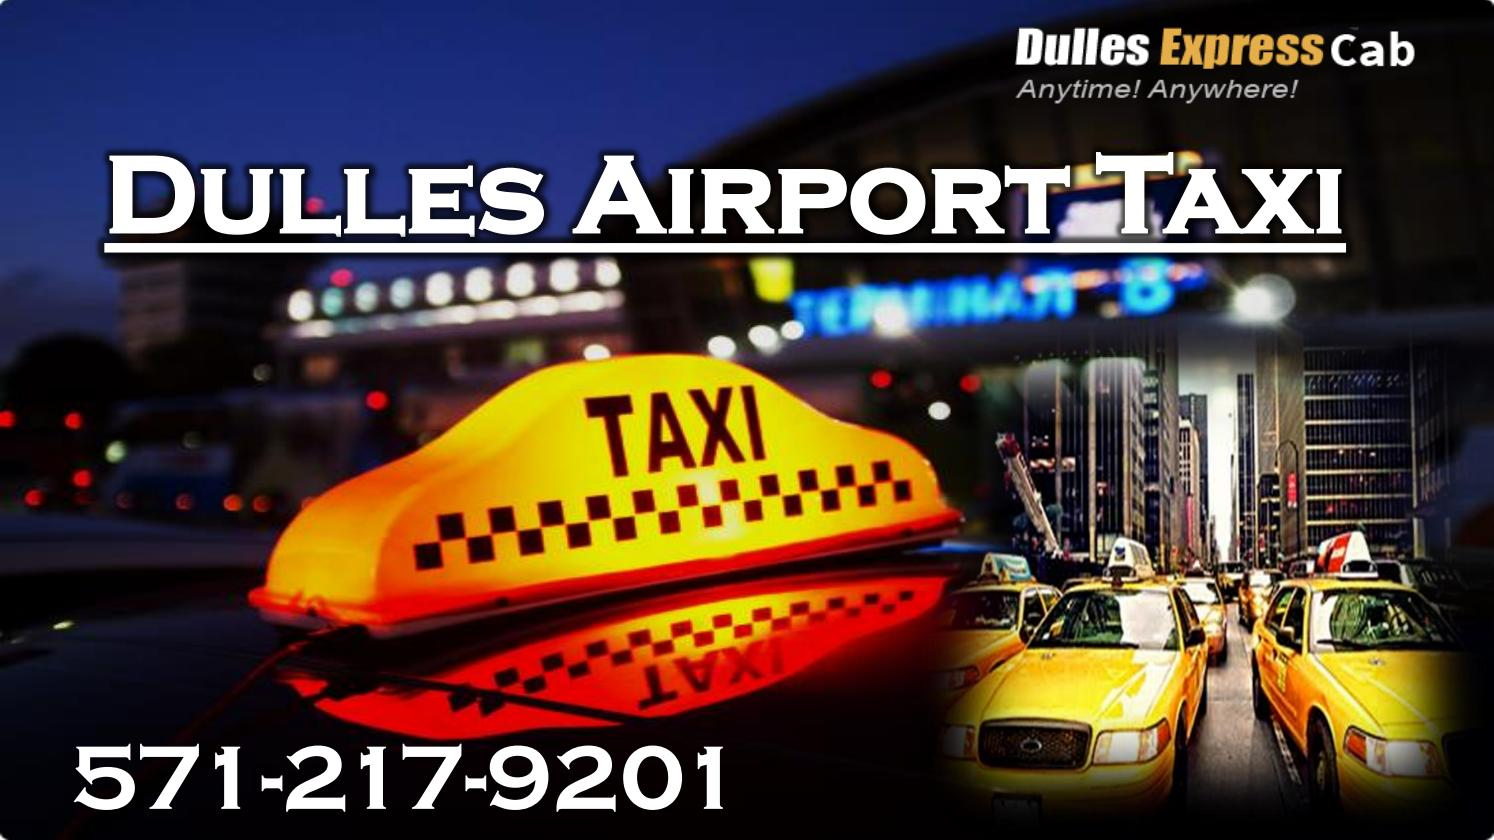 Dulles airport taxi by dullesexpresscab40 - issuu